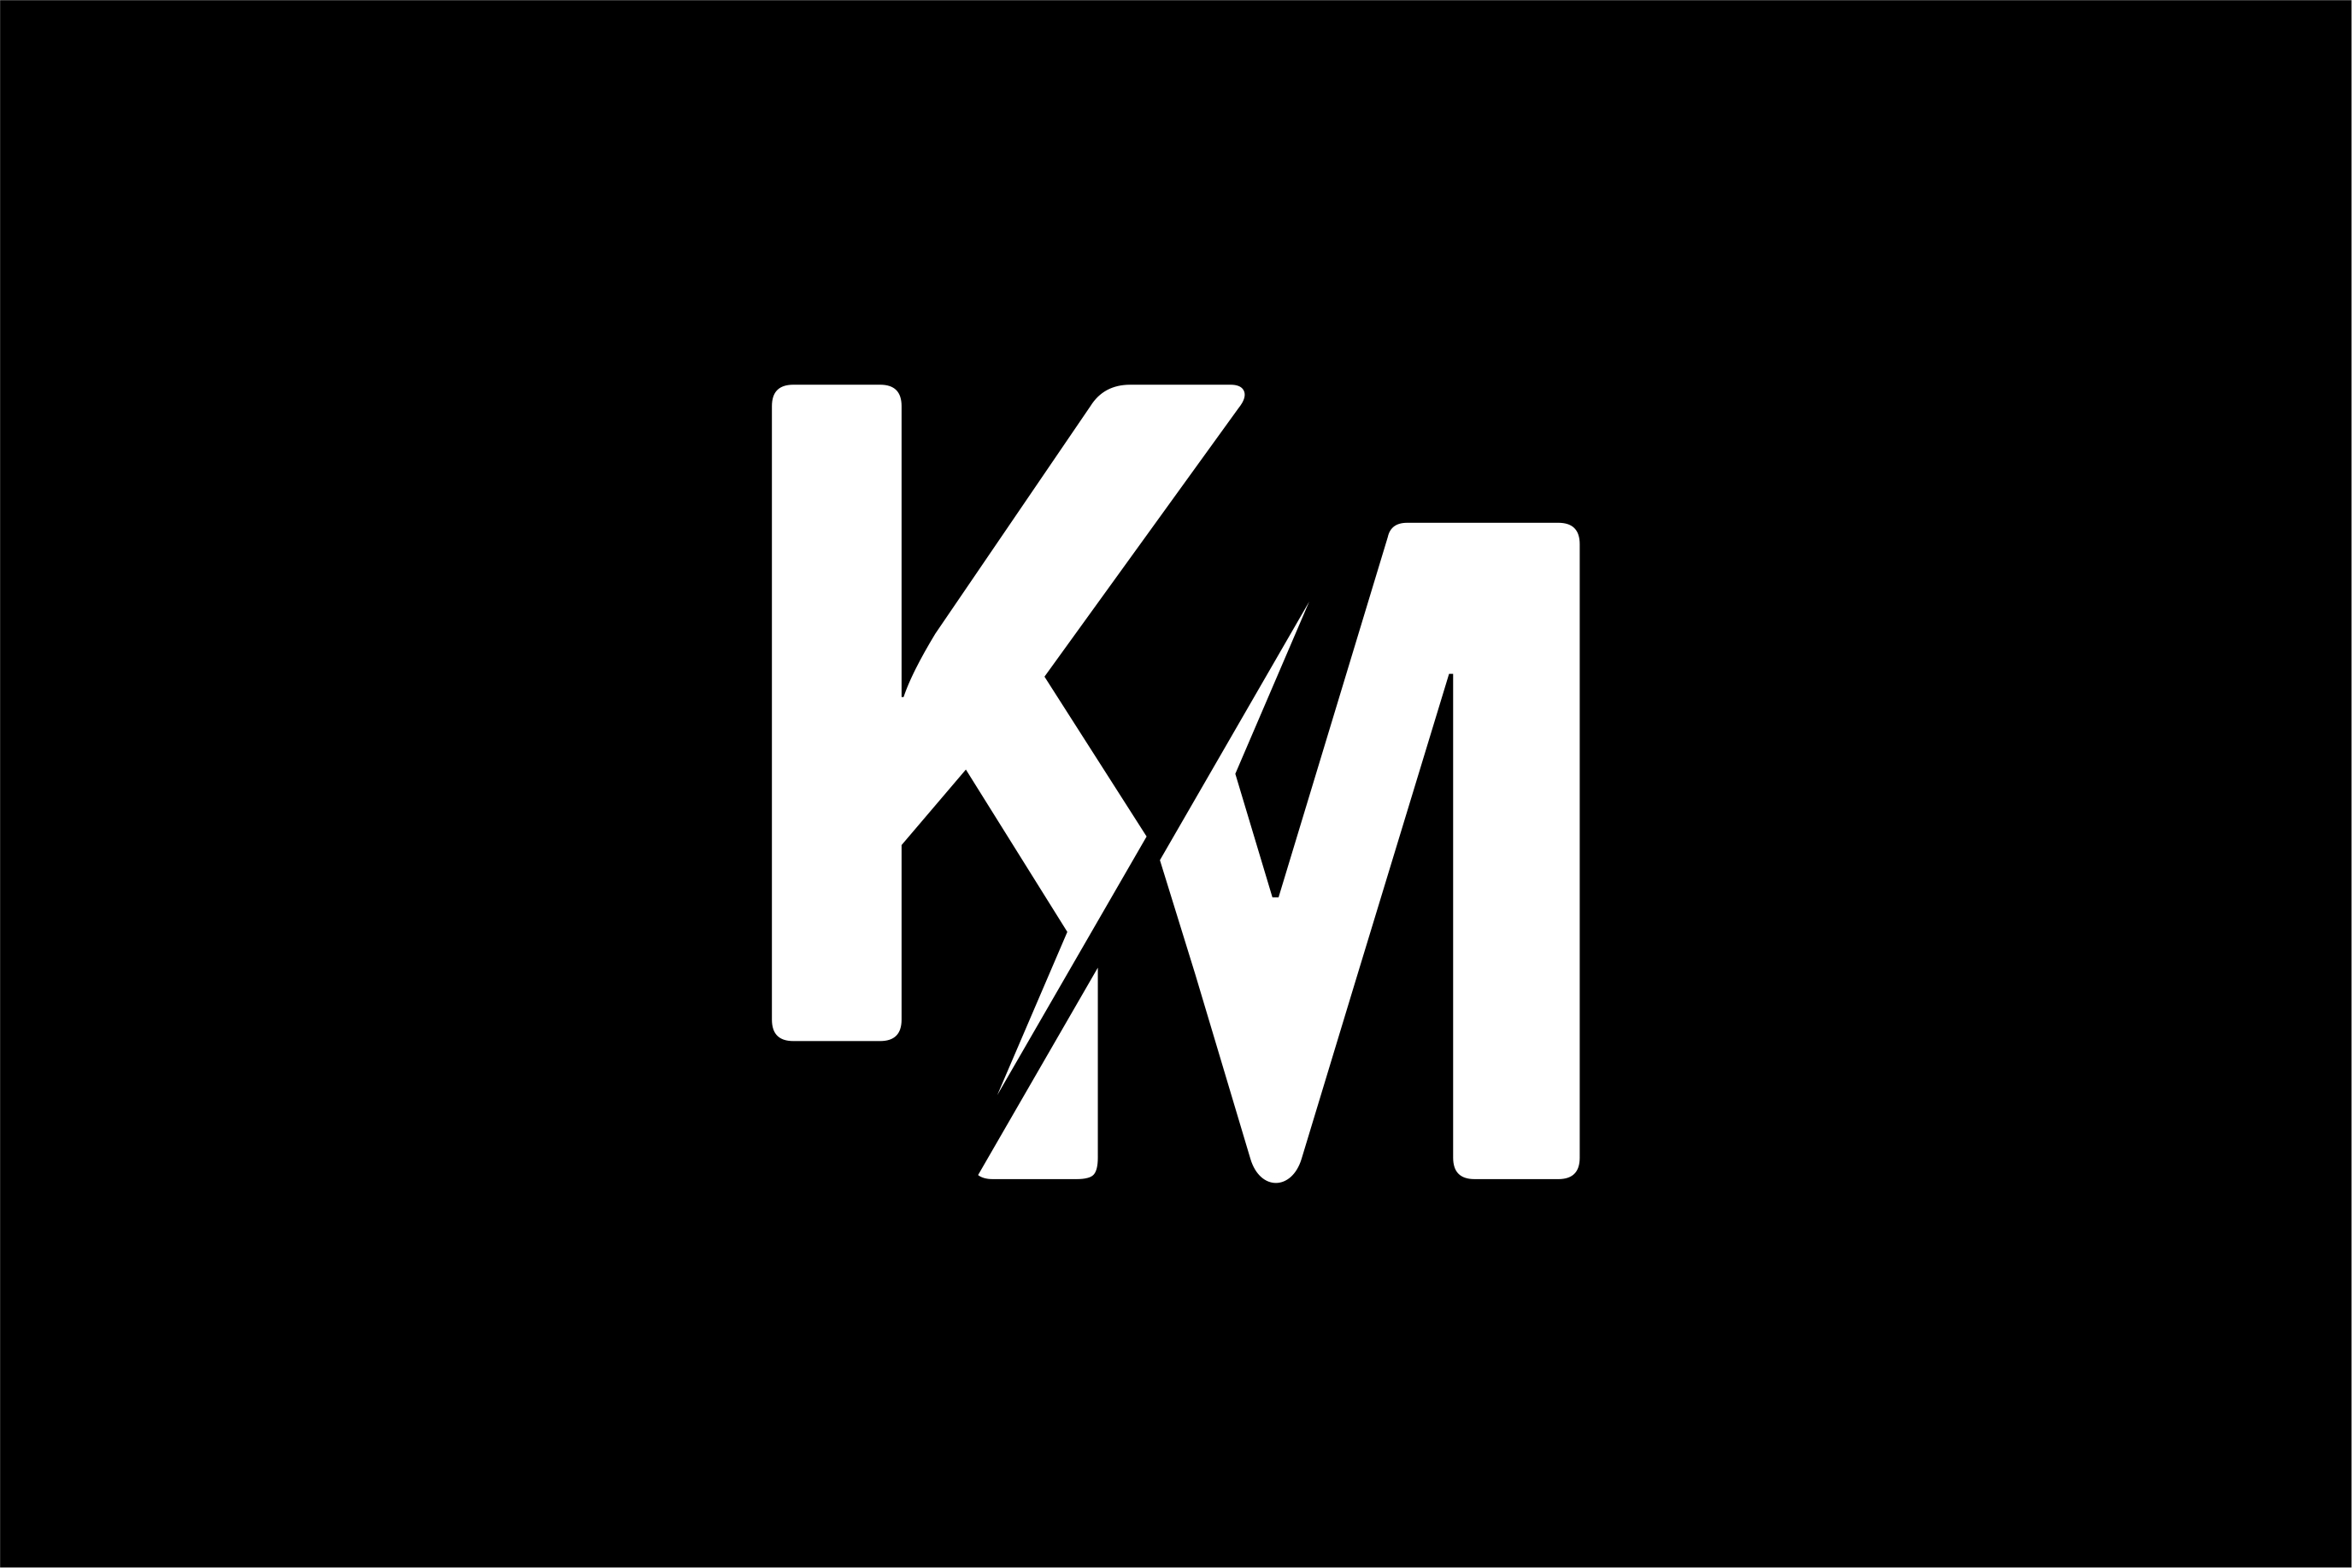 Monogram Km Logo Design Graphic By Greenlines Studios Creative Fabrica